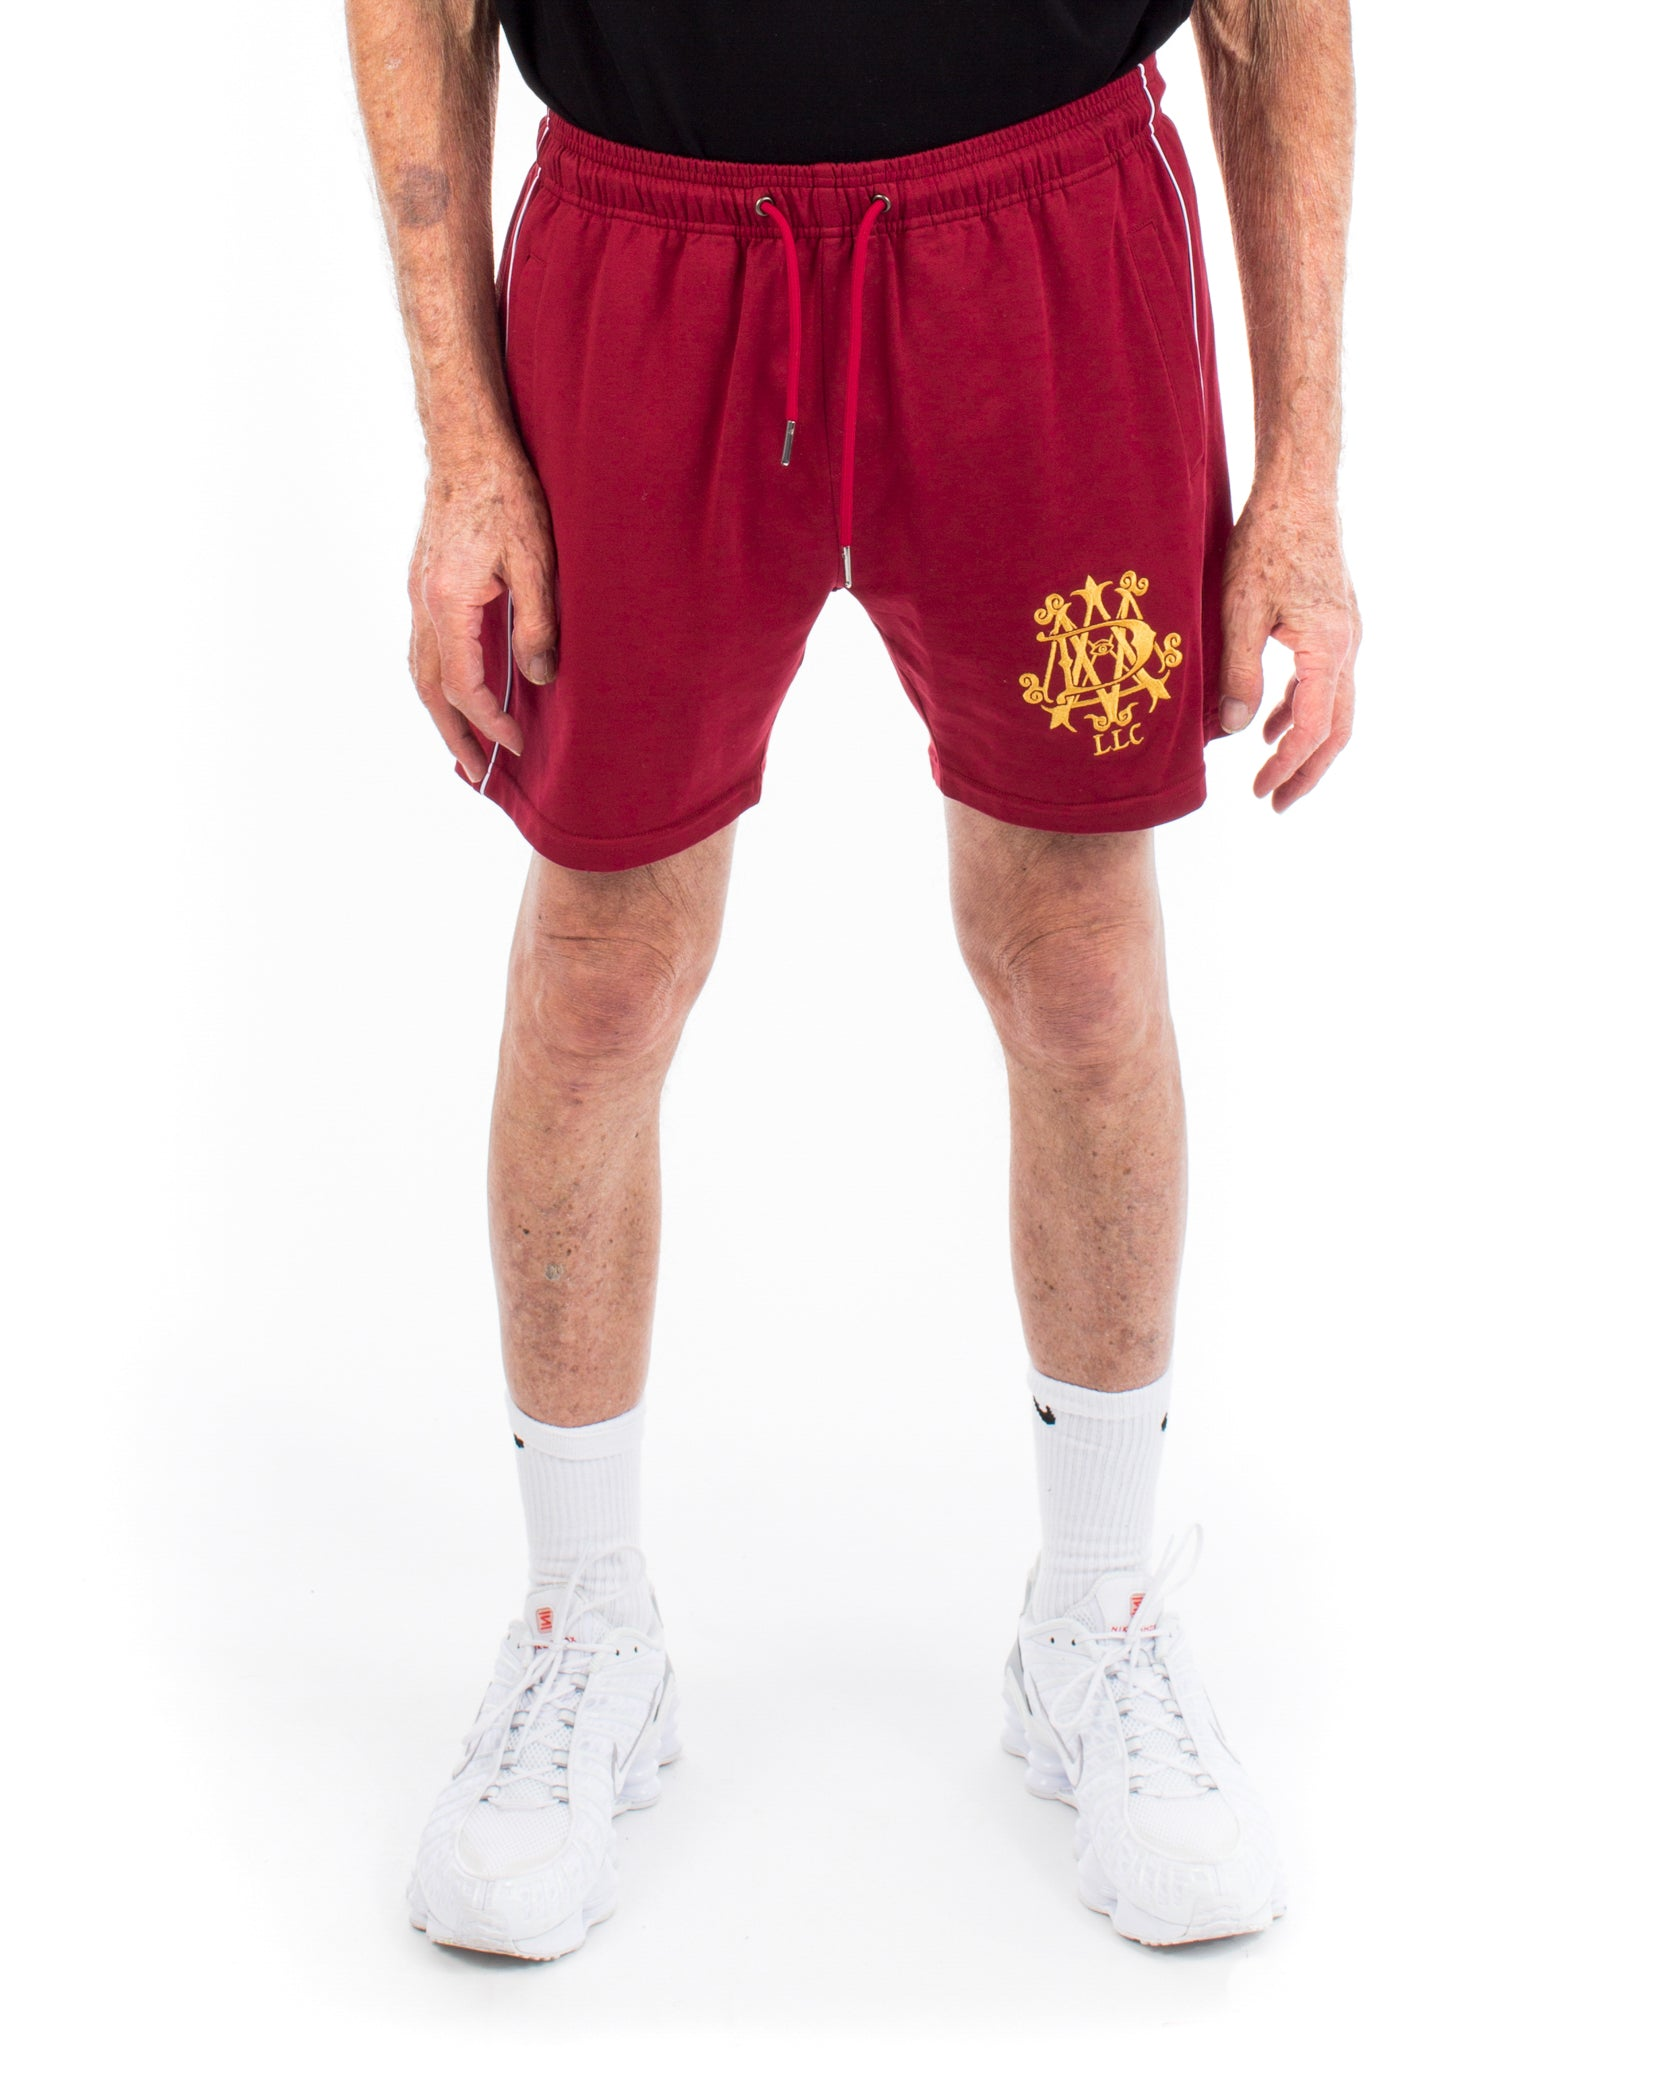 PIPING SHORTS - BURGUNDY